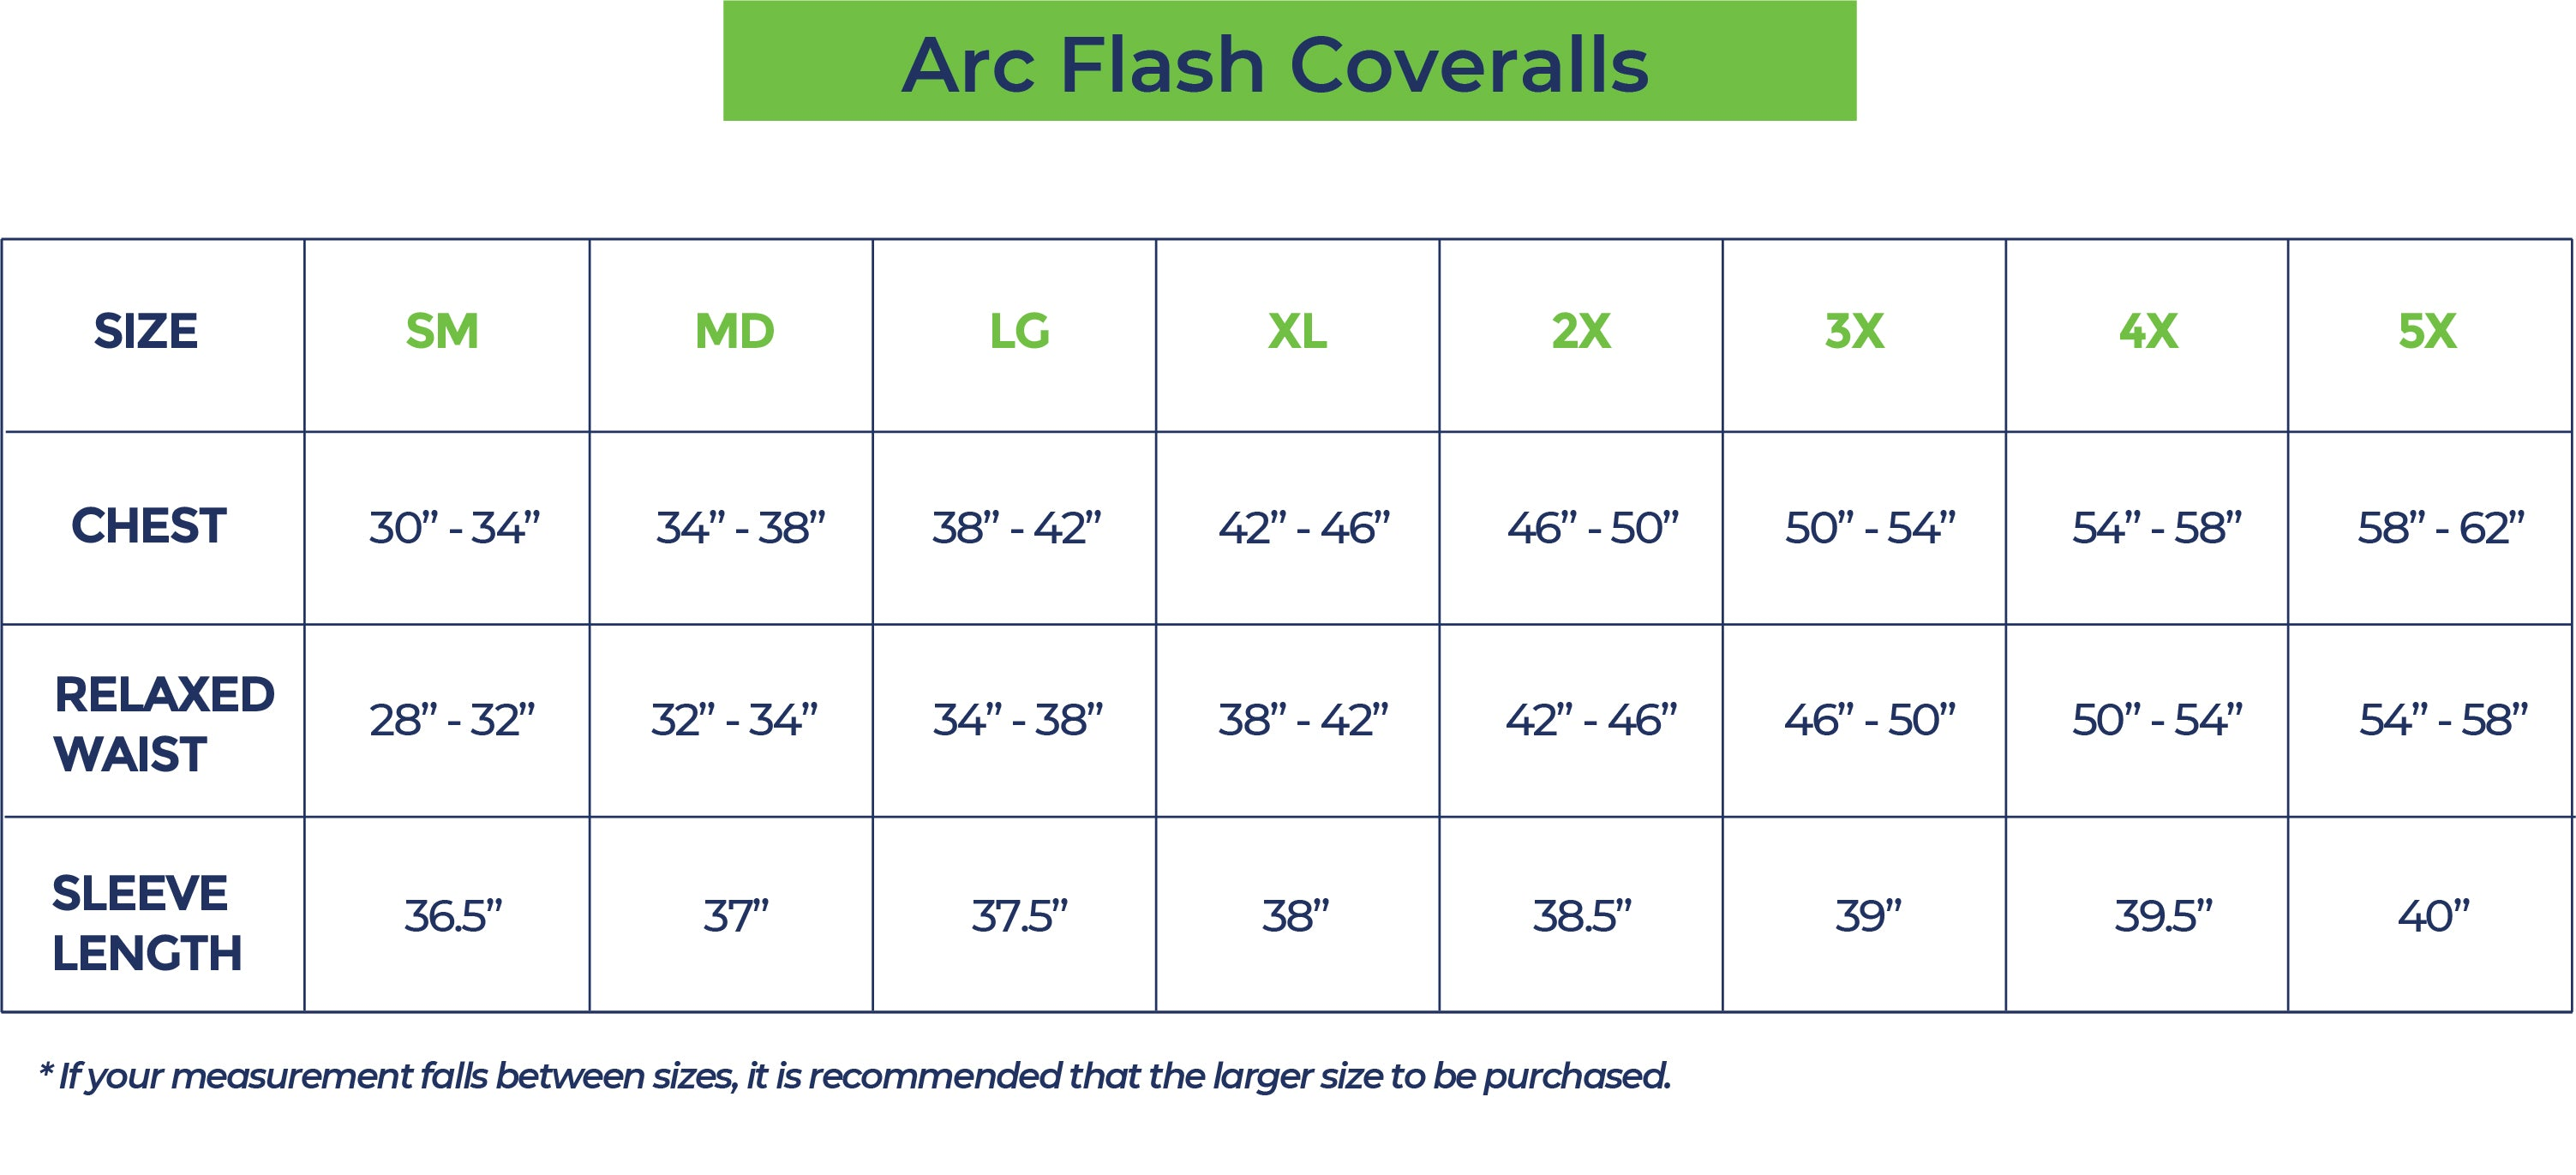 Arc Flash Coveralls Sizing Chart